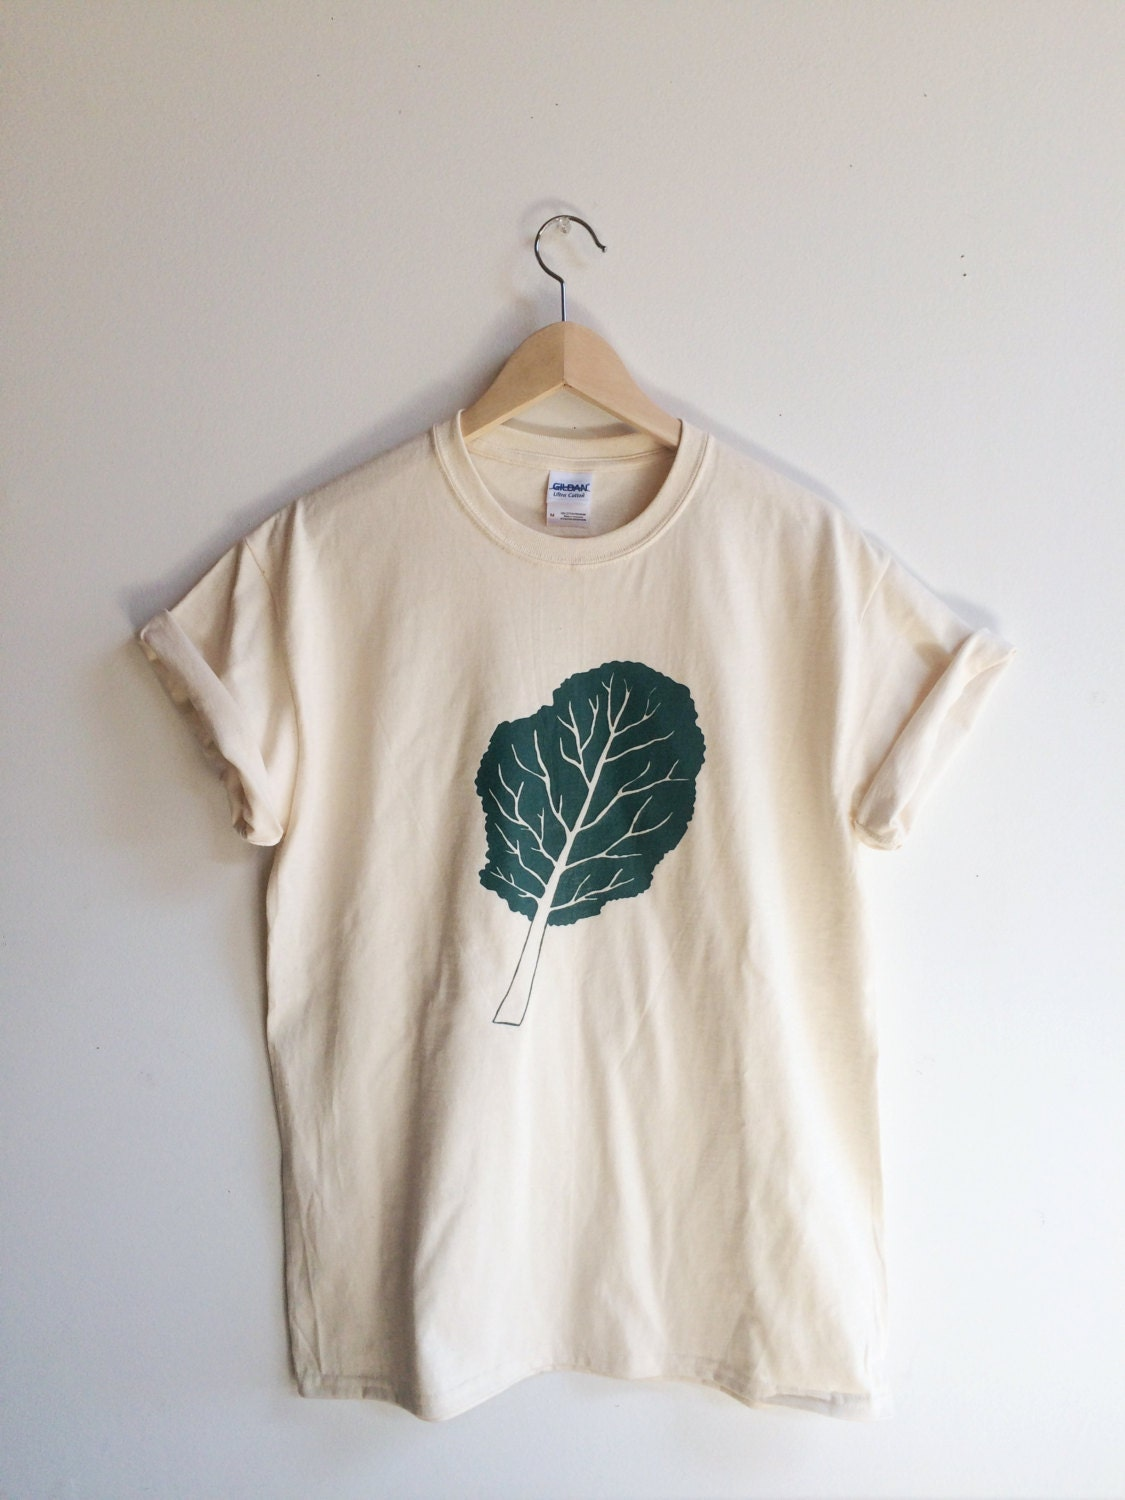 Kale screen printed t shirt kale shirt by andmorgan on etsy for Photo printing on t shirts